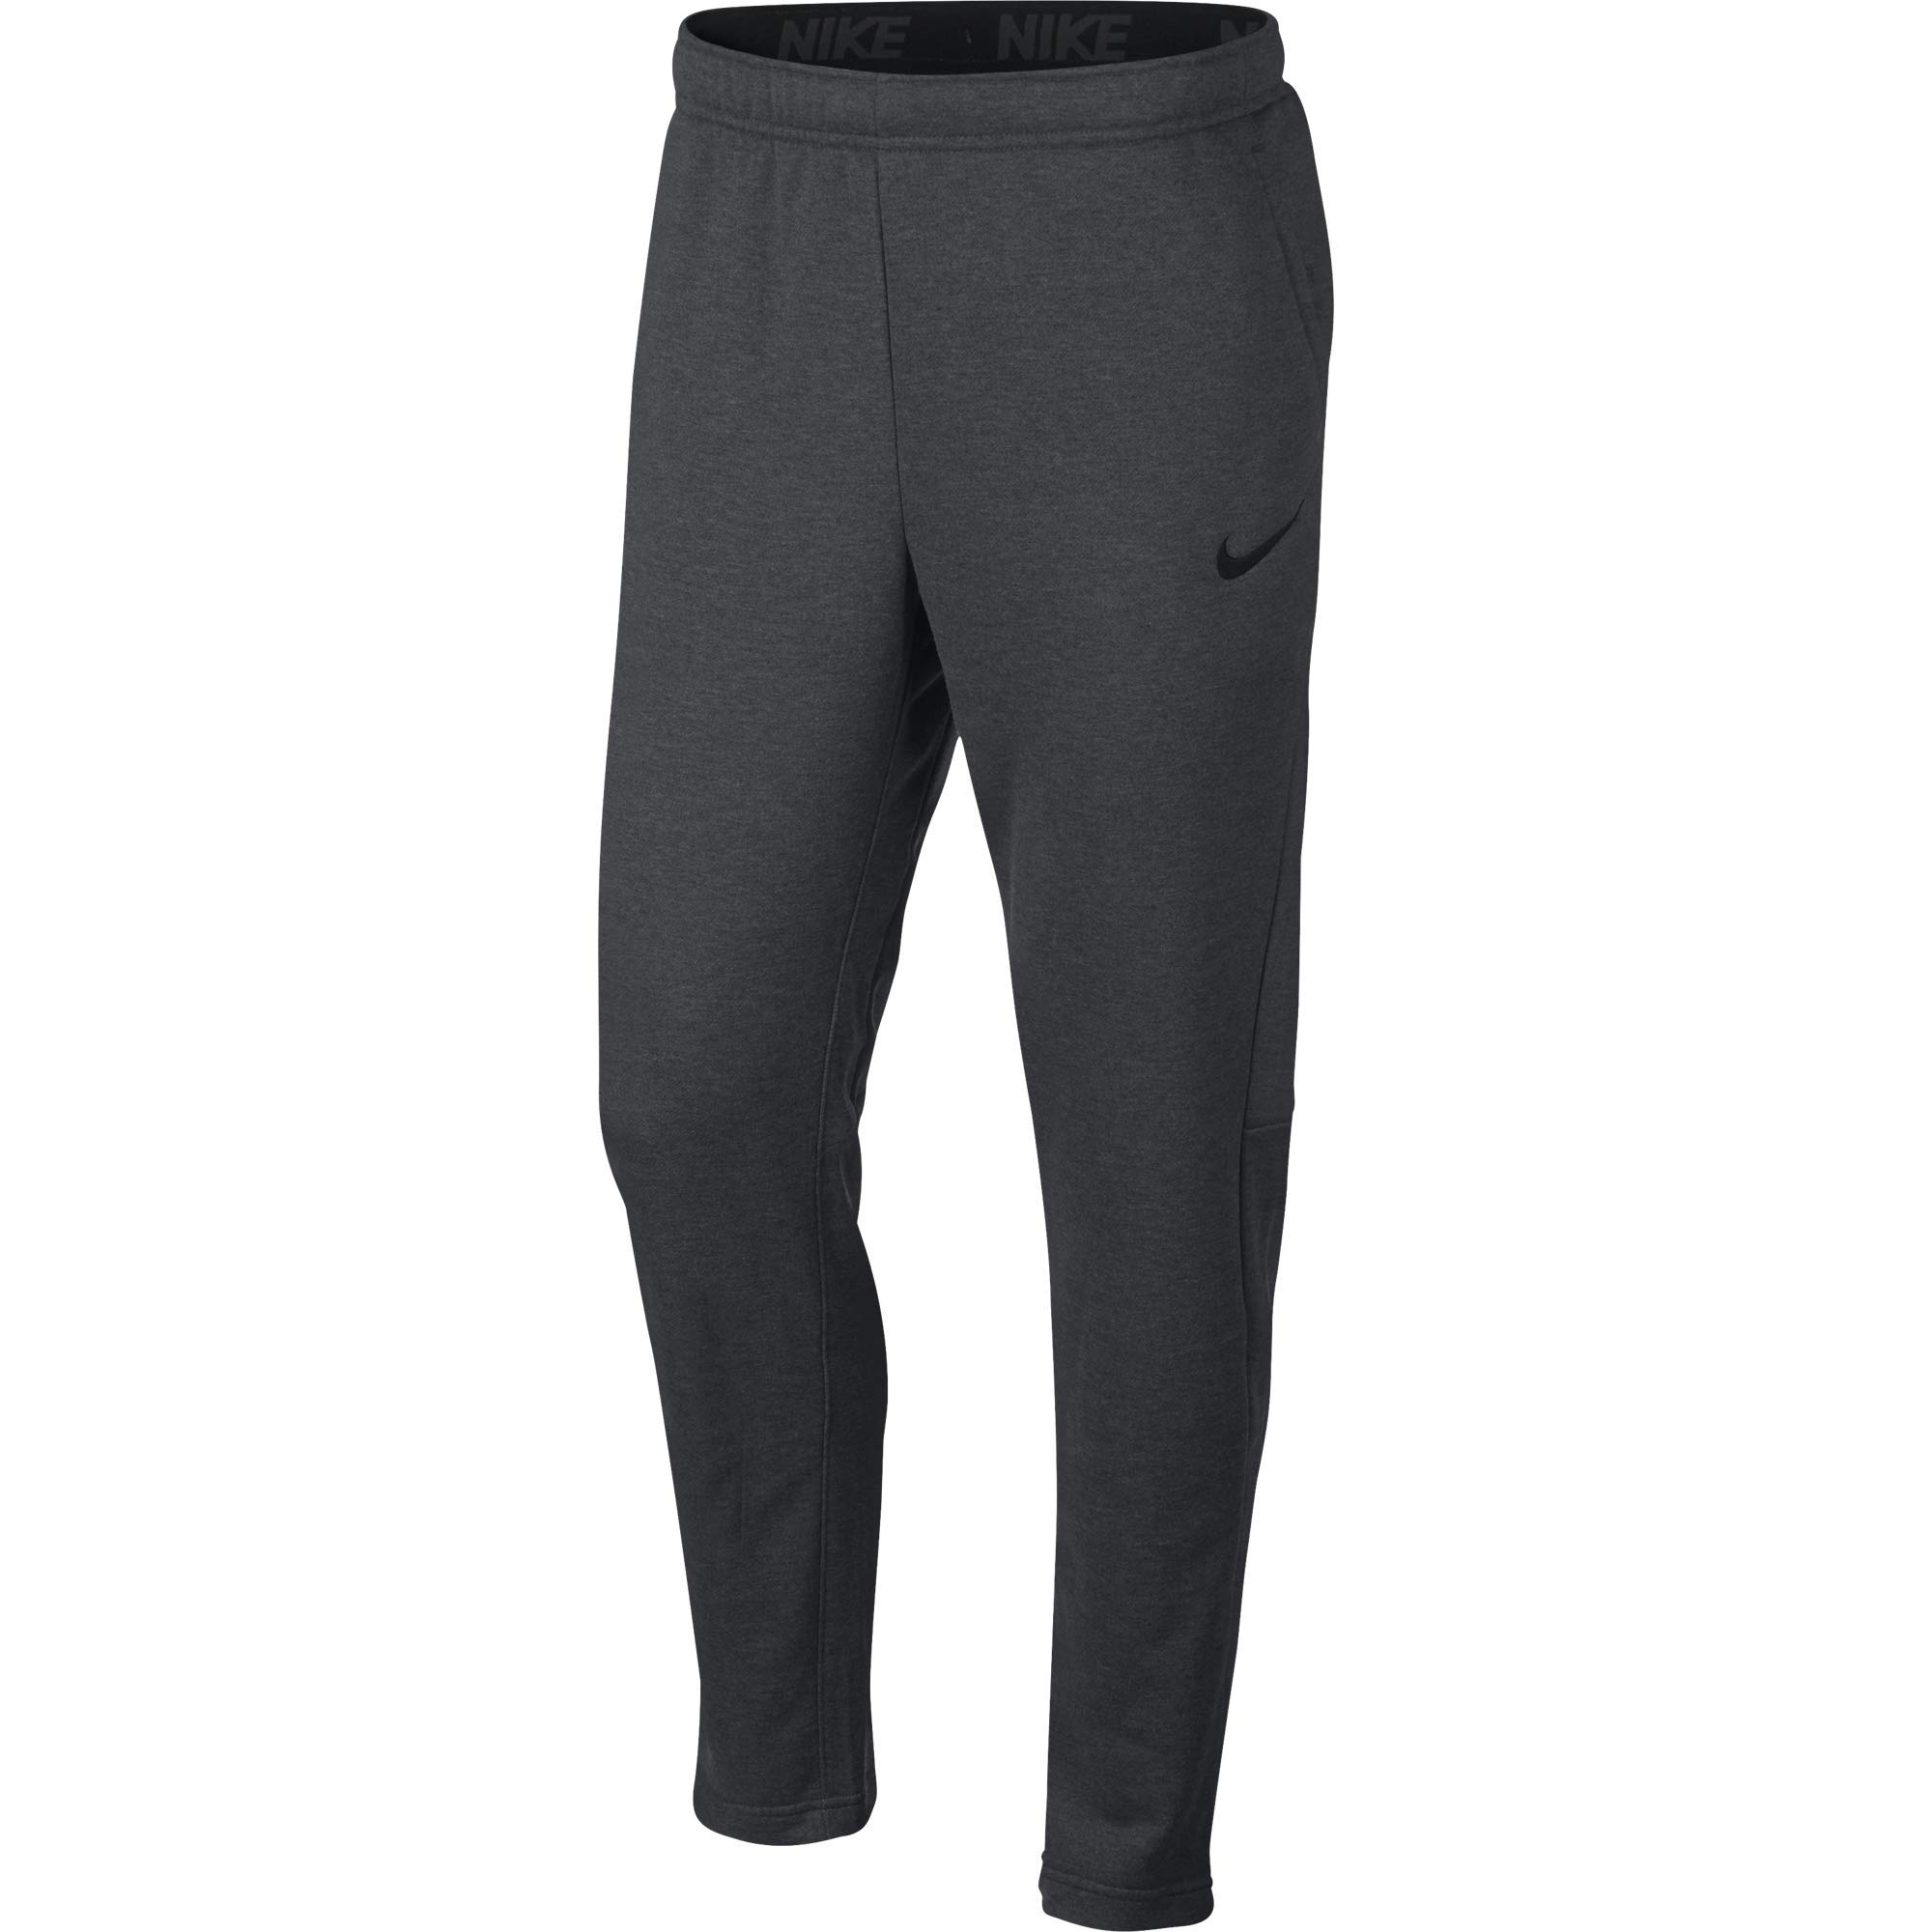 Nike Men's Dry Fleece Training Pants, Charcoal Heather/Black, XXX-Large by Nike